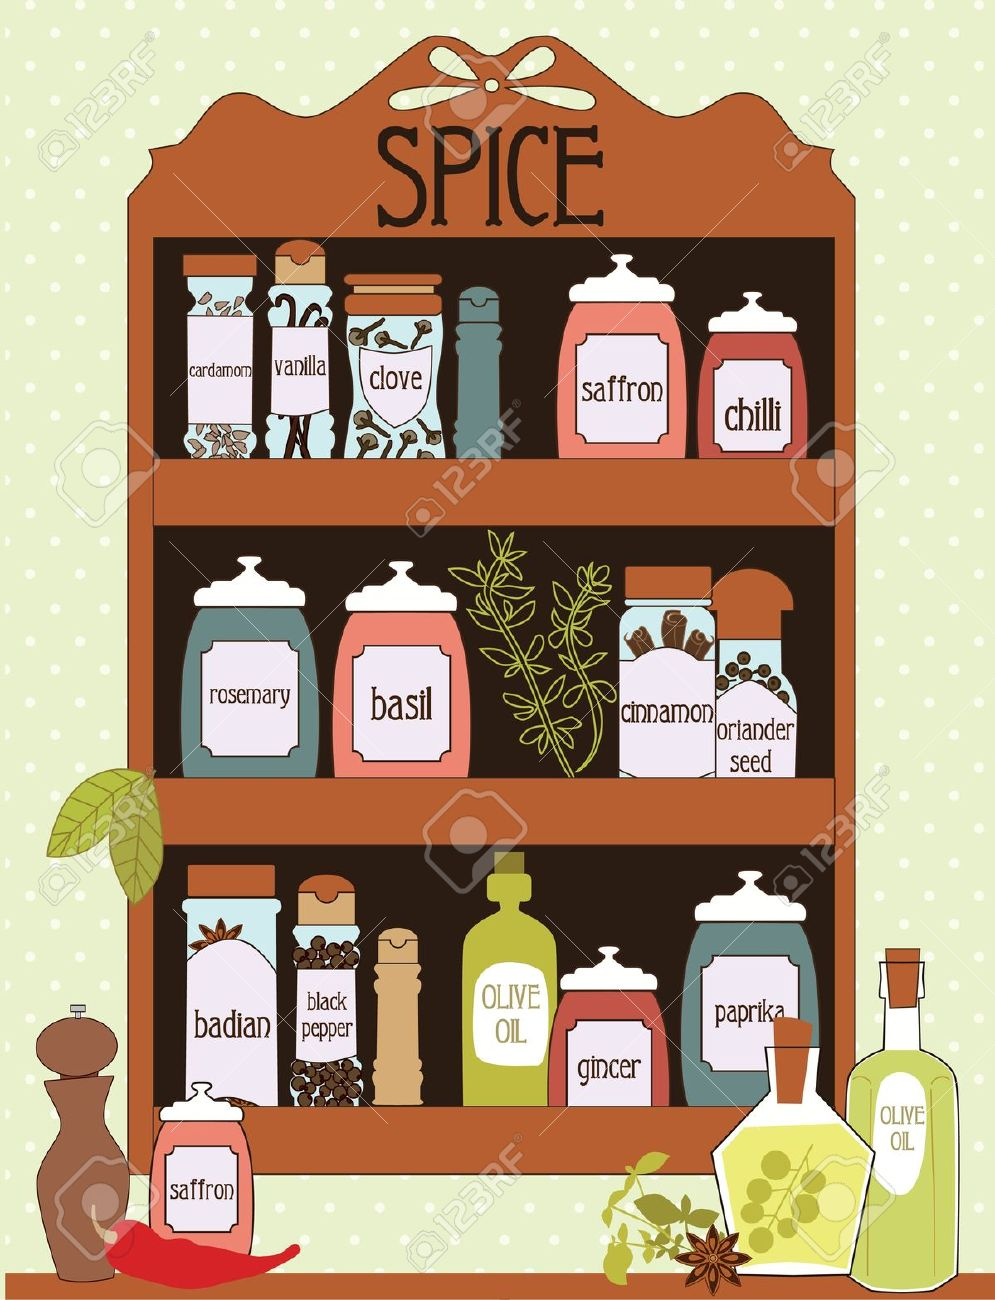 Spice Card Design. Vector Illustration Royalty Free Cliparts.